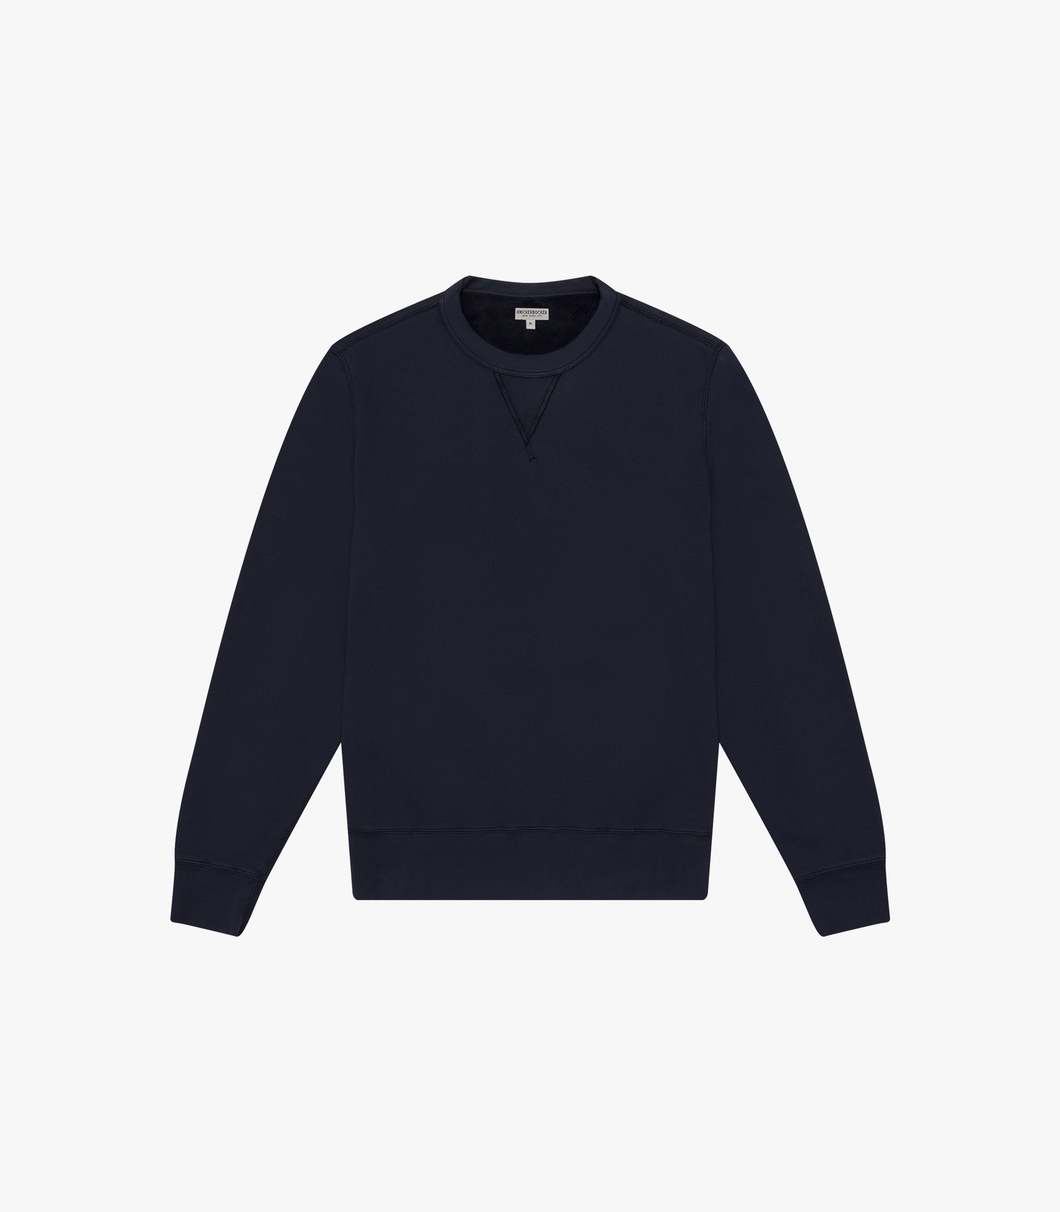 Knickerbocker - The Standard Crew - Dark Navy